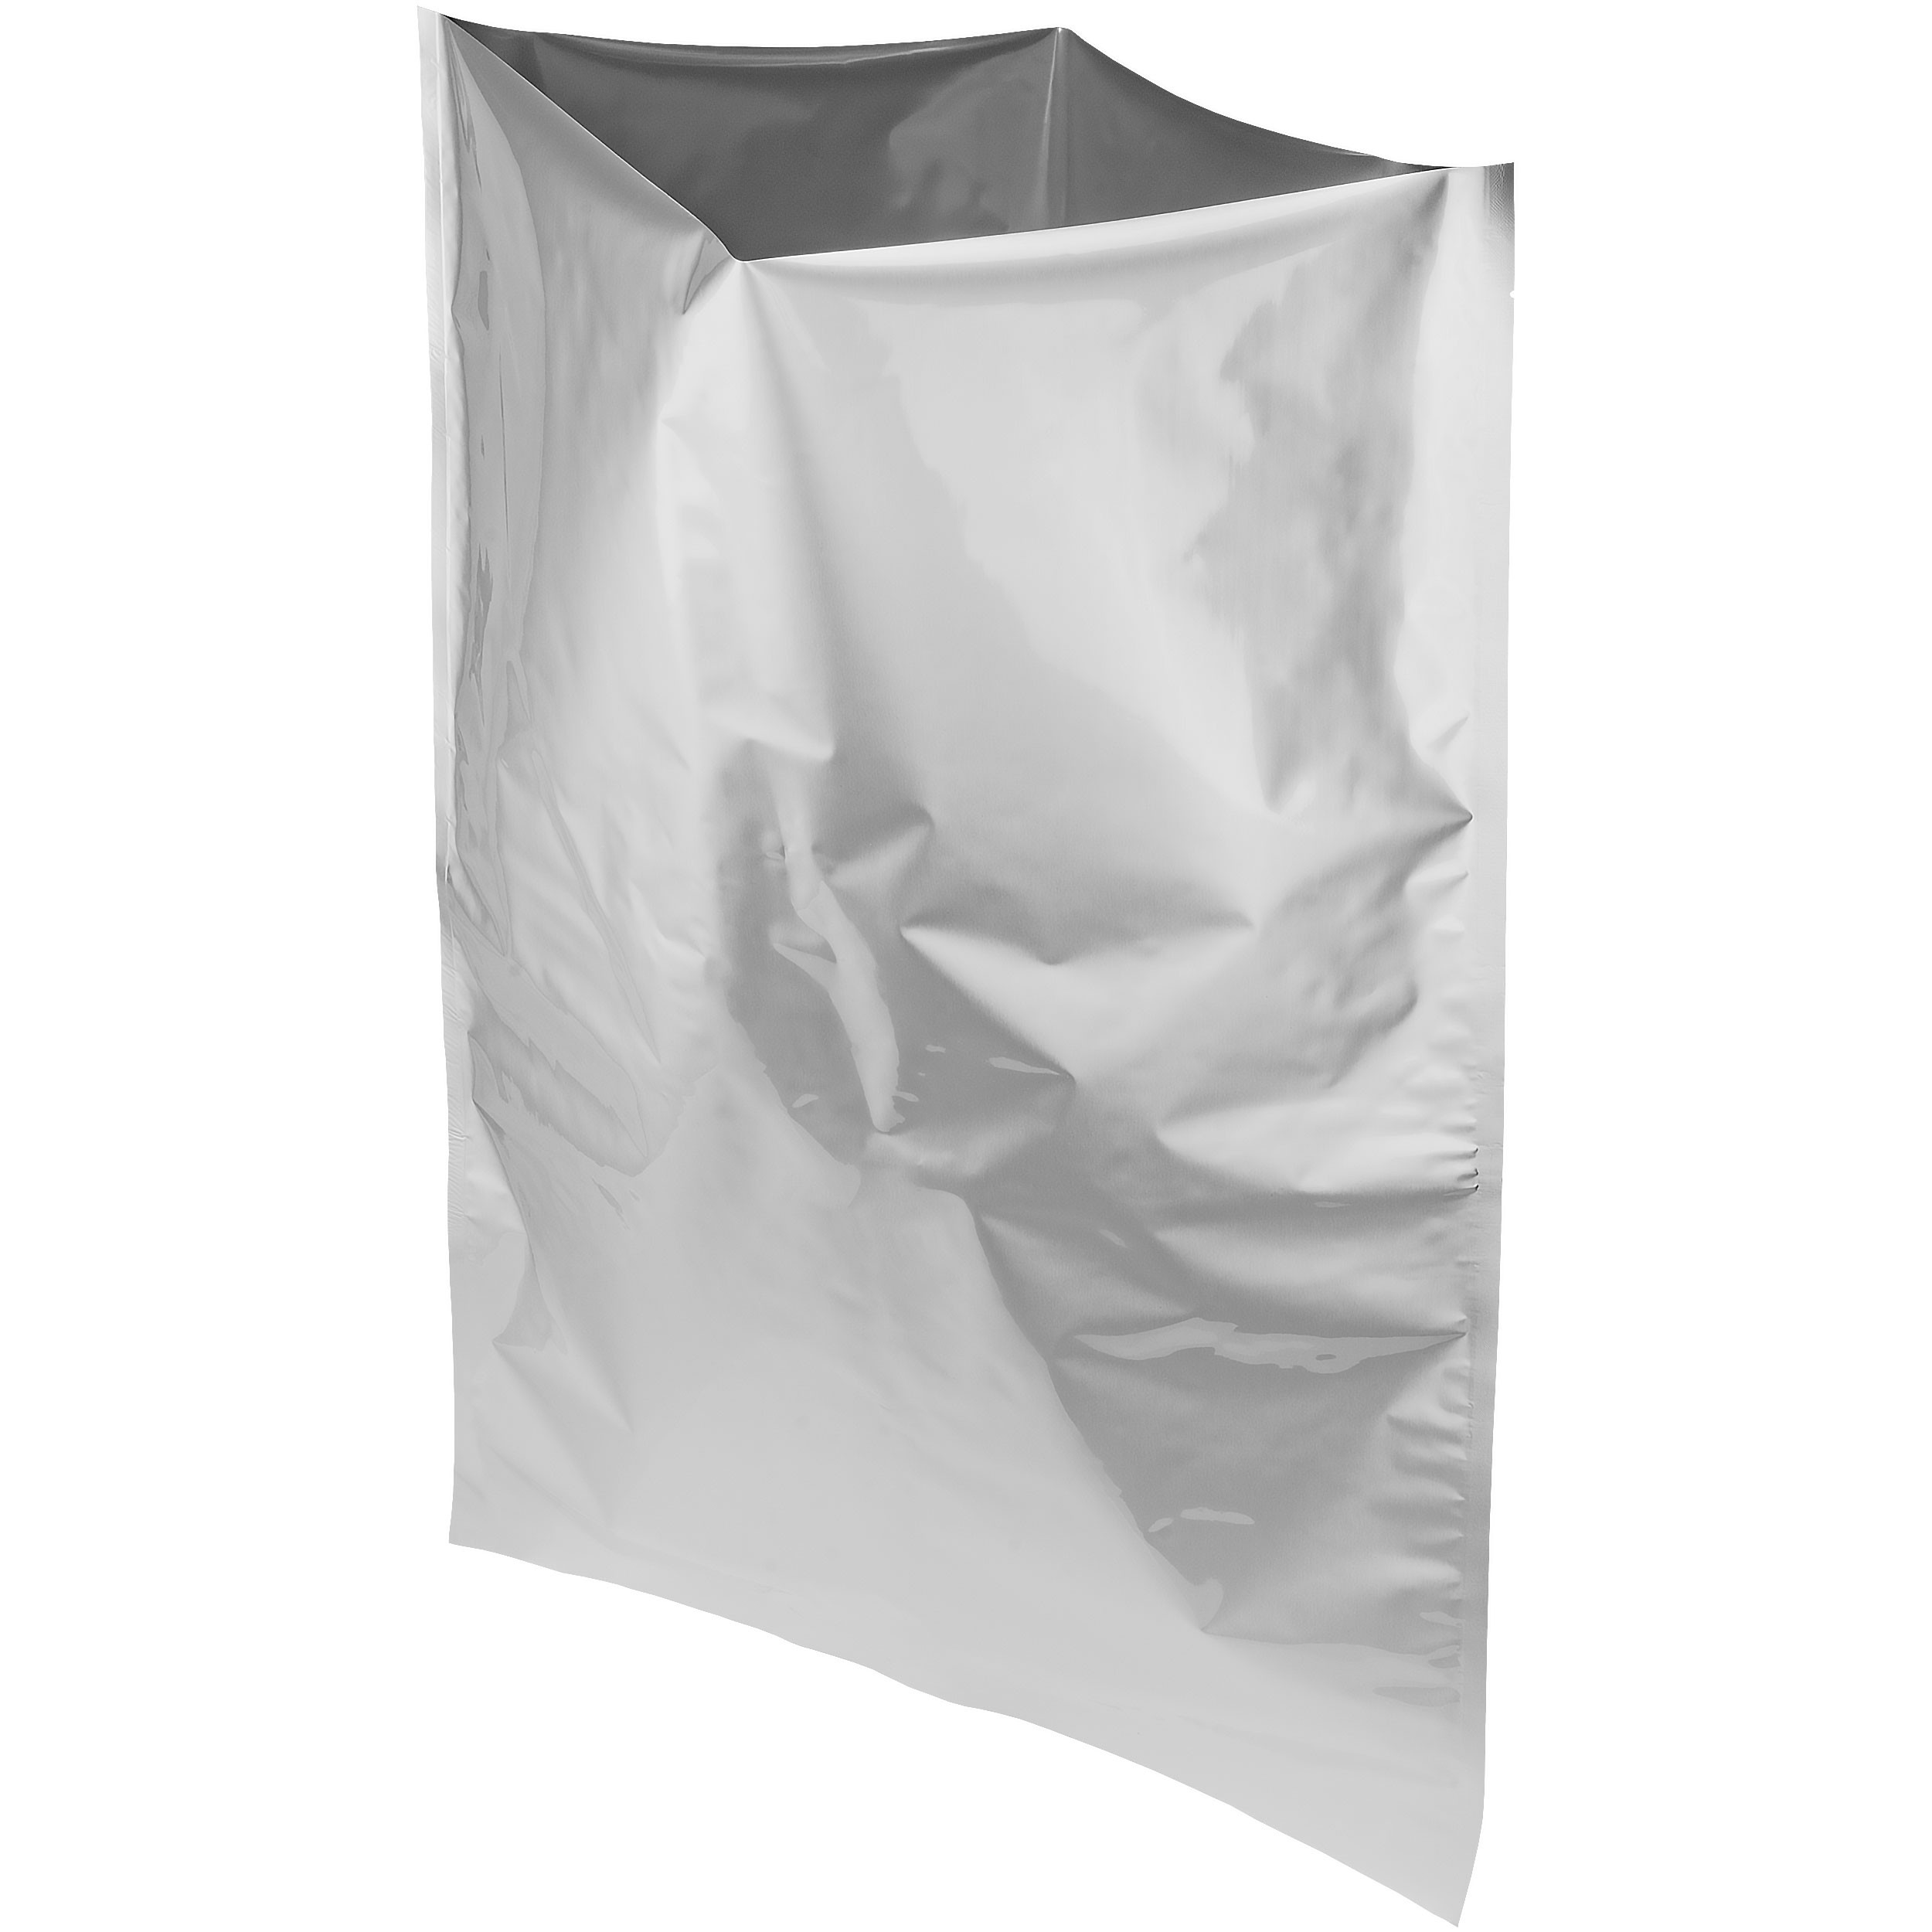 Mylar Bags & Oxygen Absorbers for Dried Food & Long Term Storage by Dry-Packs, 5-Gallon, Pack of 10